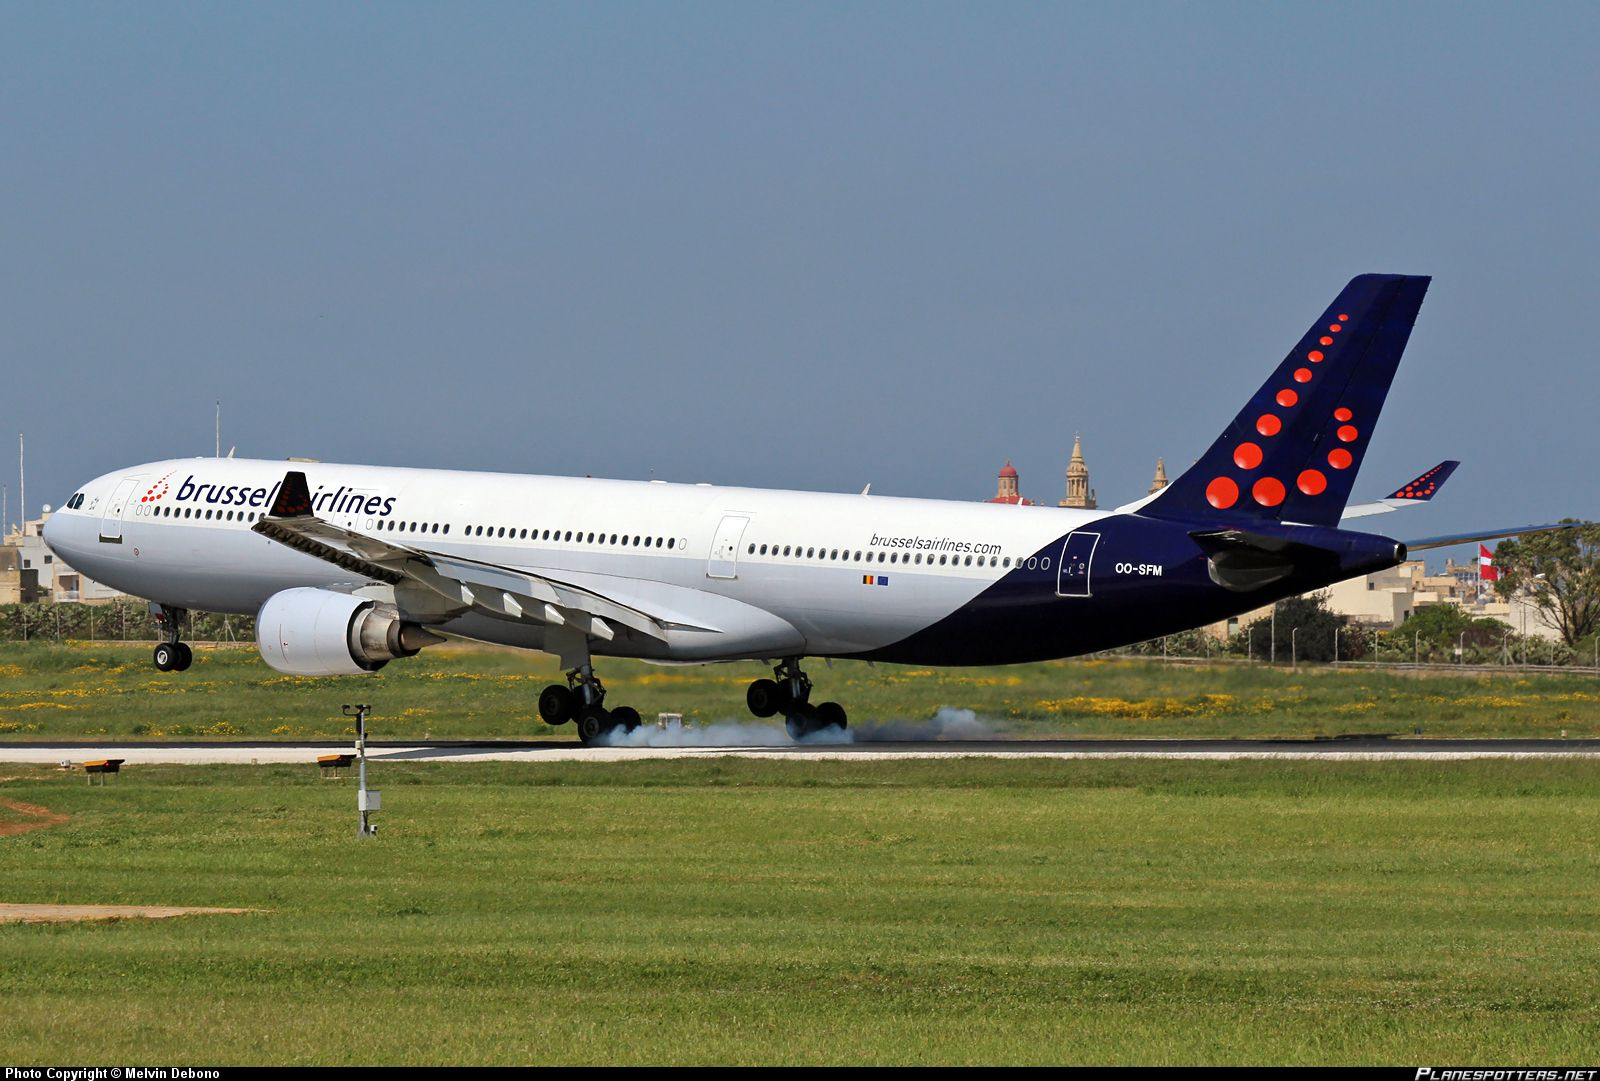 Brussels Airlines resumes flights to India from March 2017